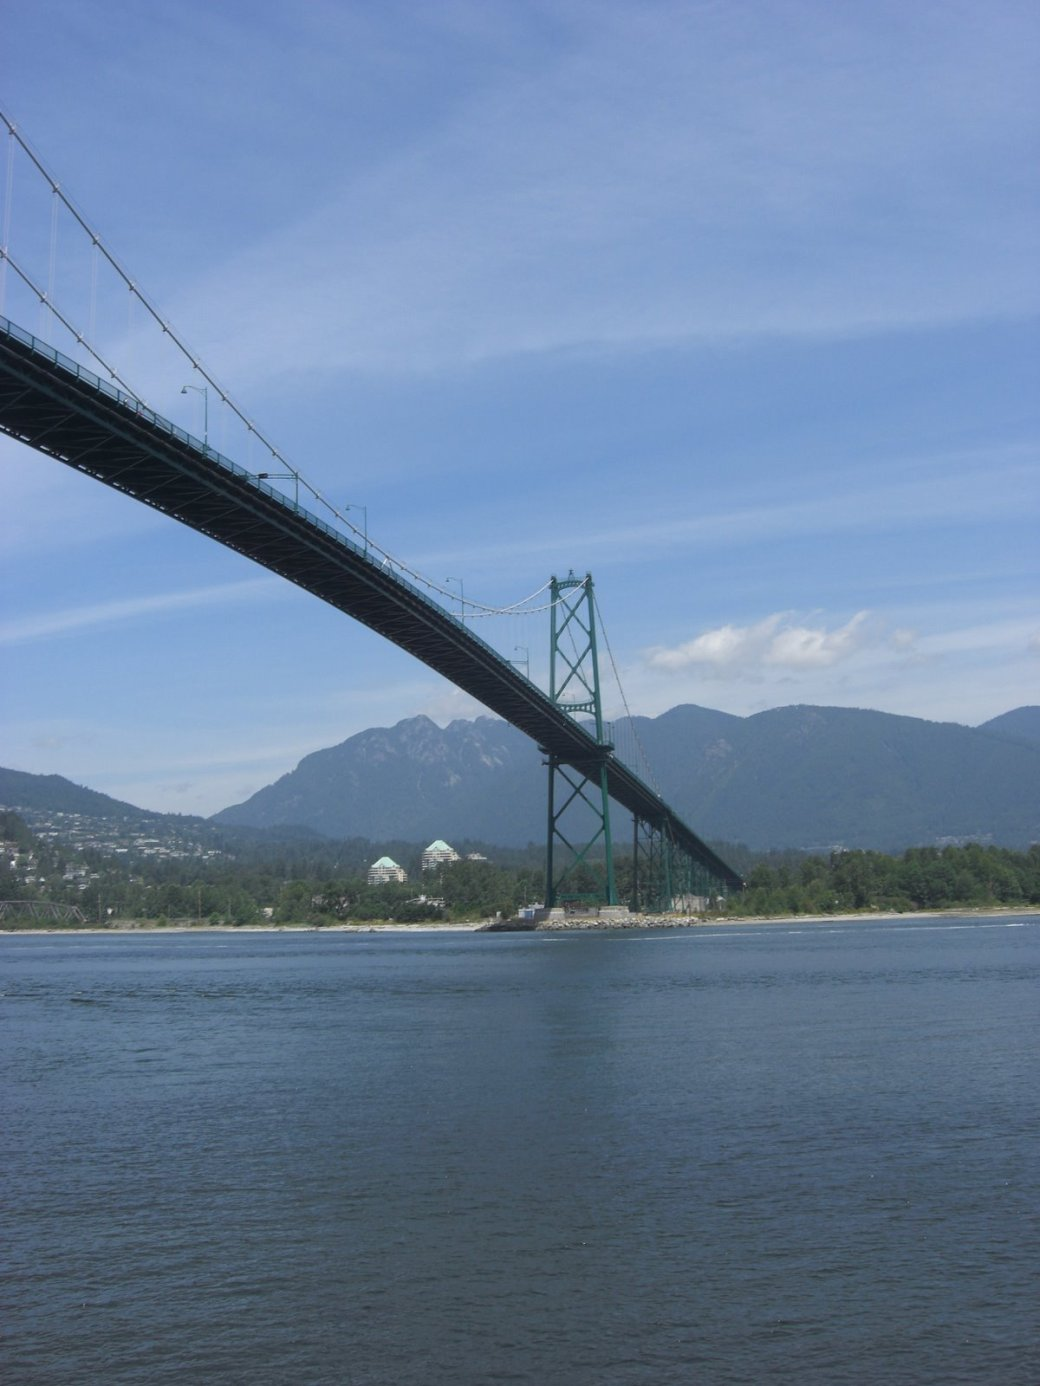 Another one of the Lion's Gate Bridge